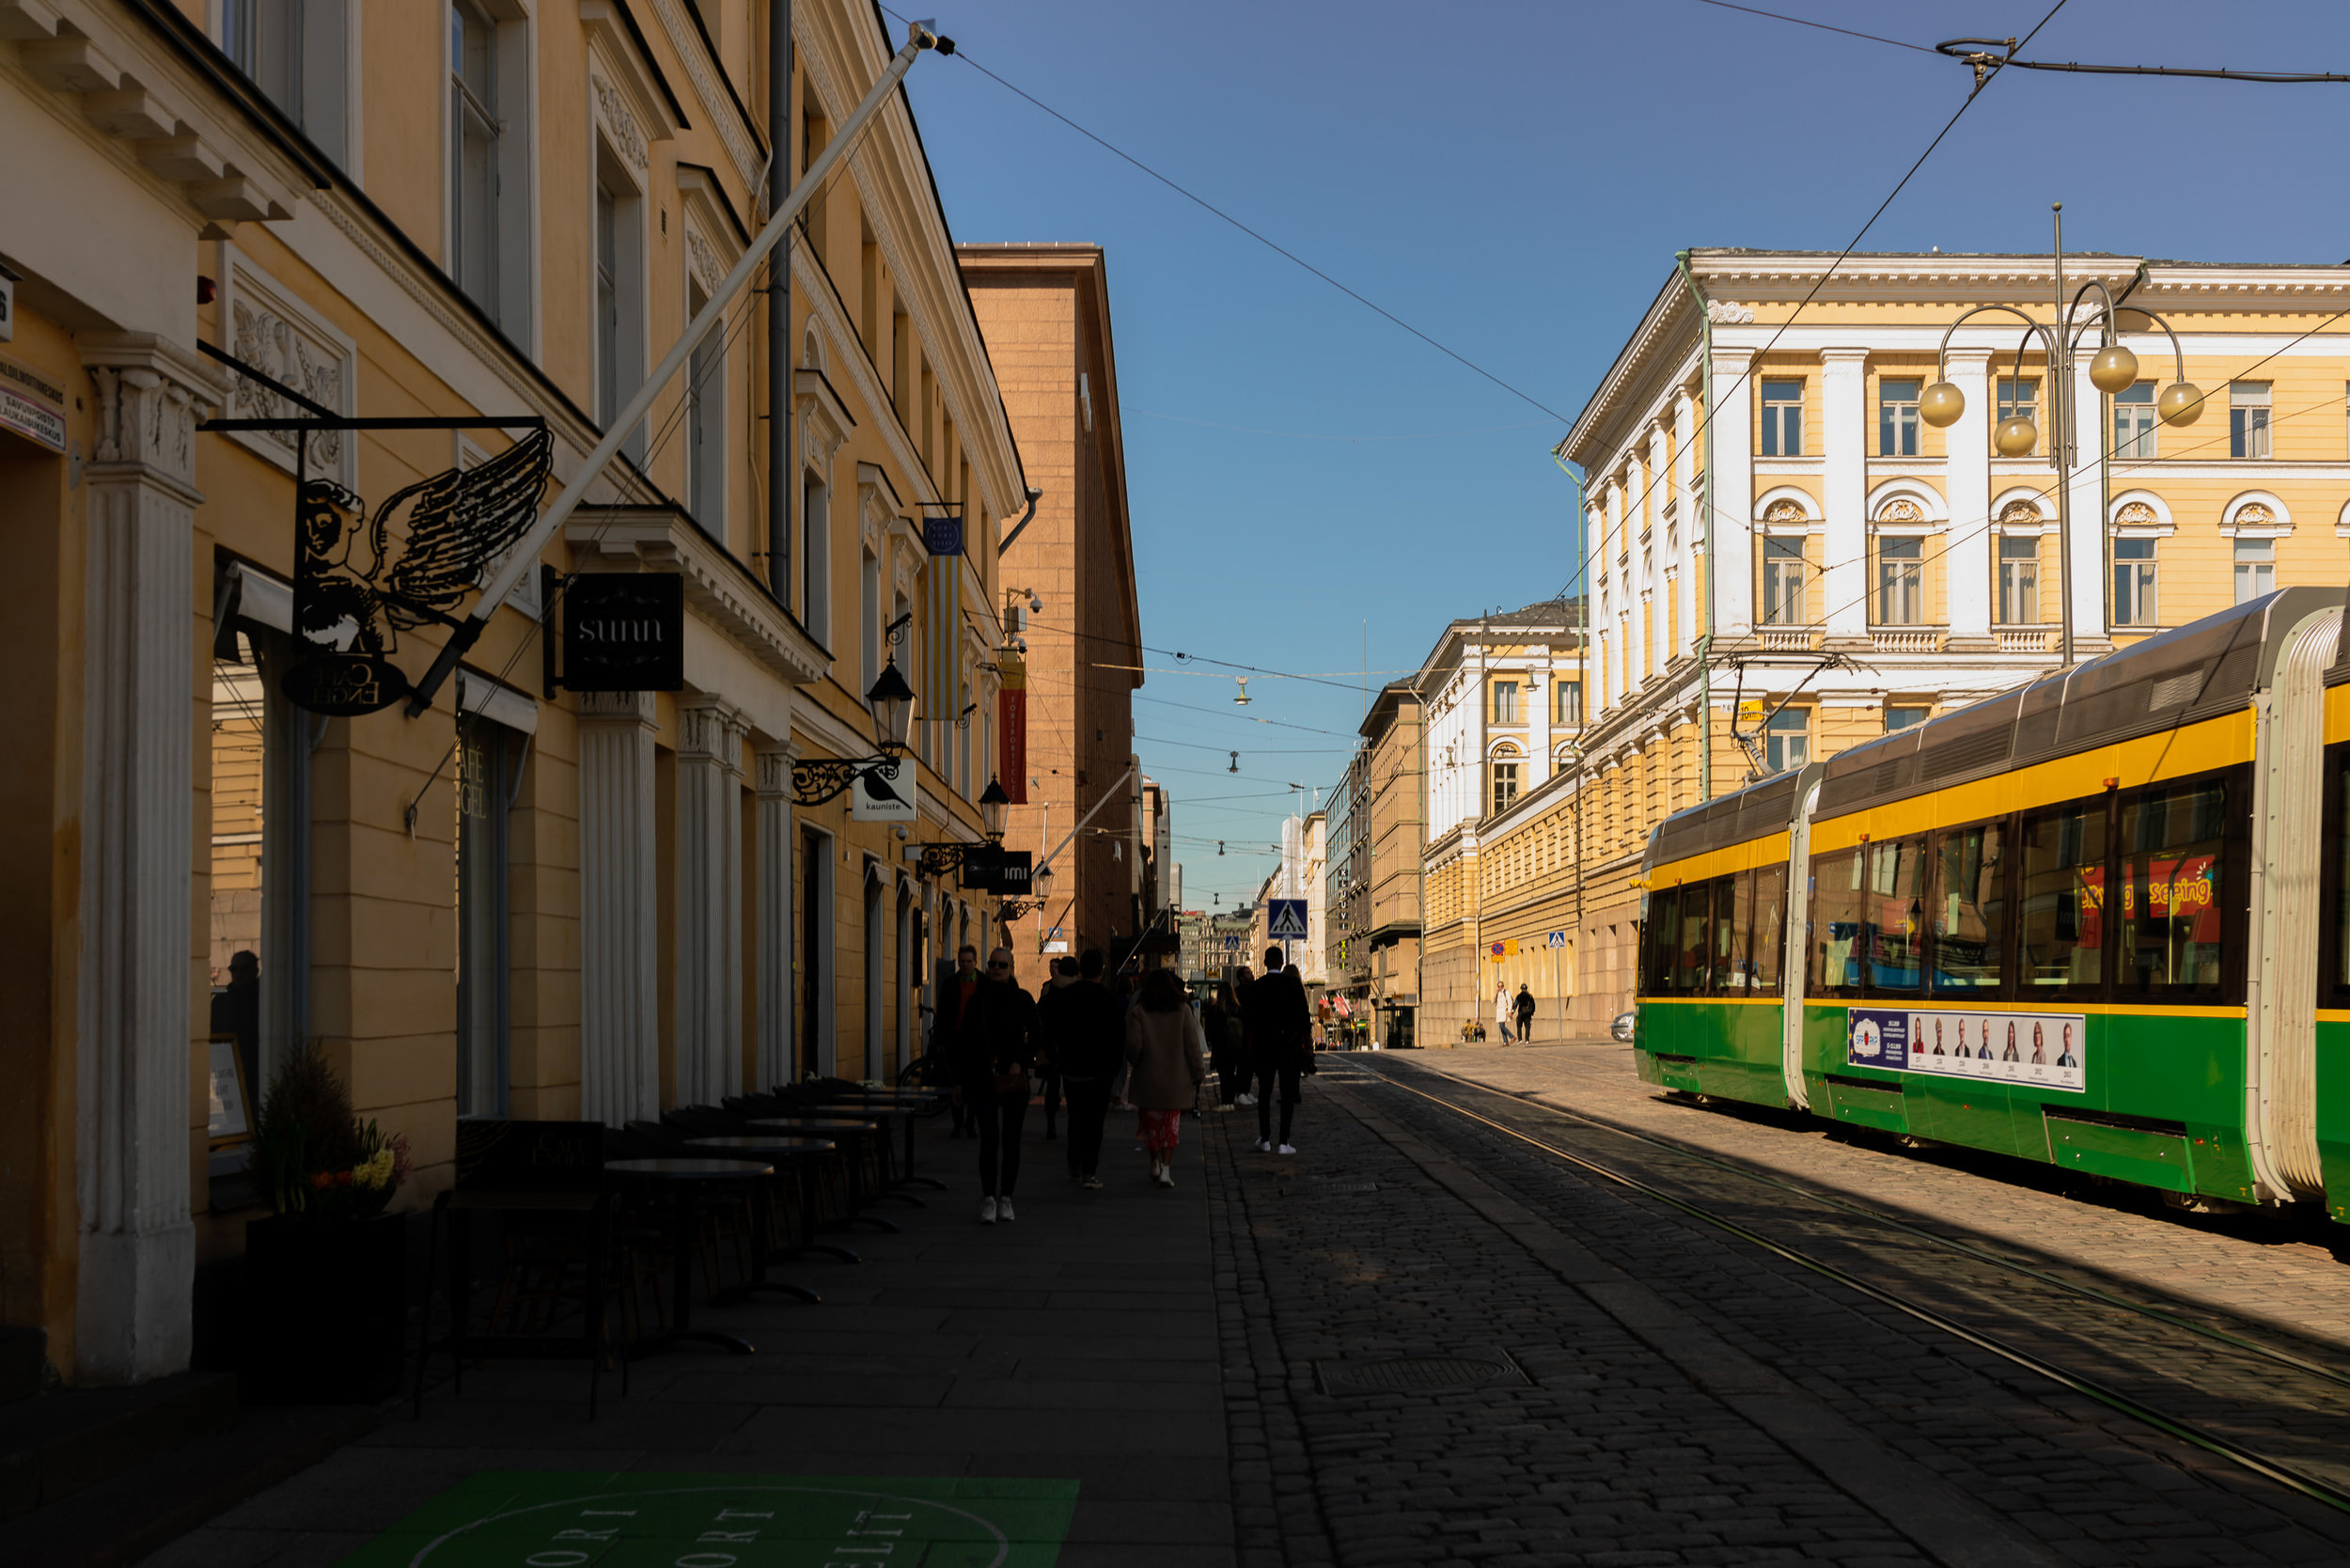 One of the easiest ways to get around Helsinki is to purchase a tram card. The tram stops almost everywhere in the city center and beyond.